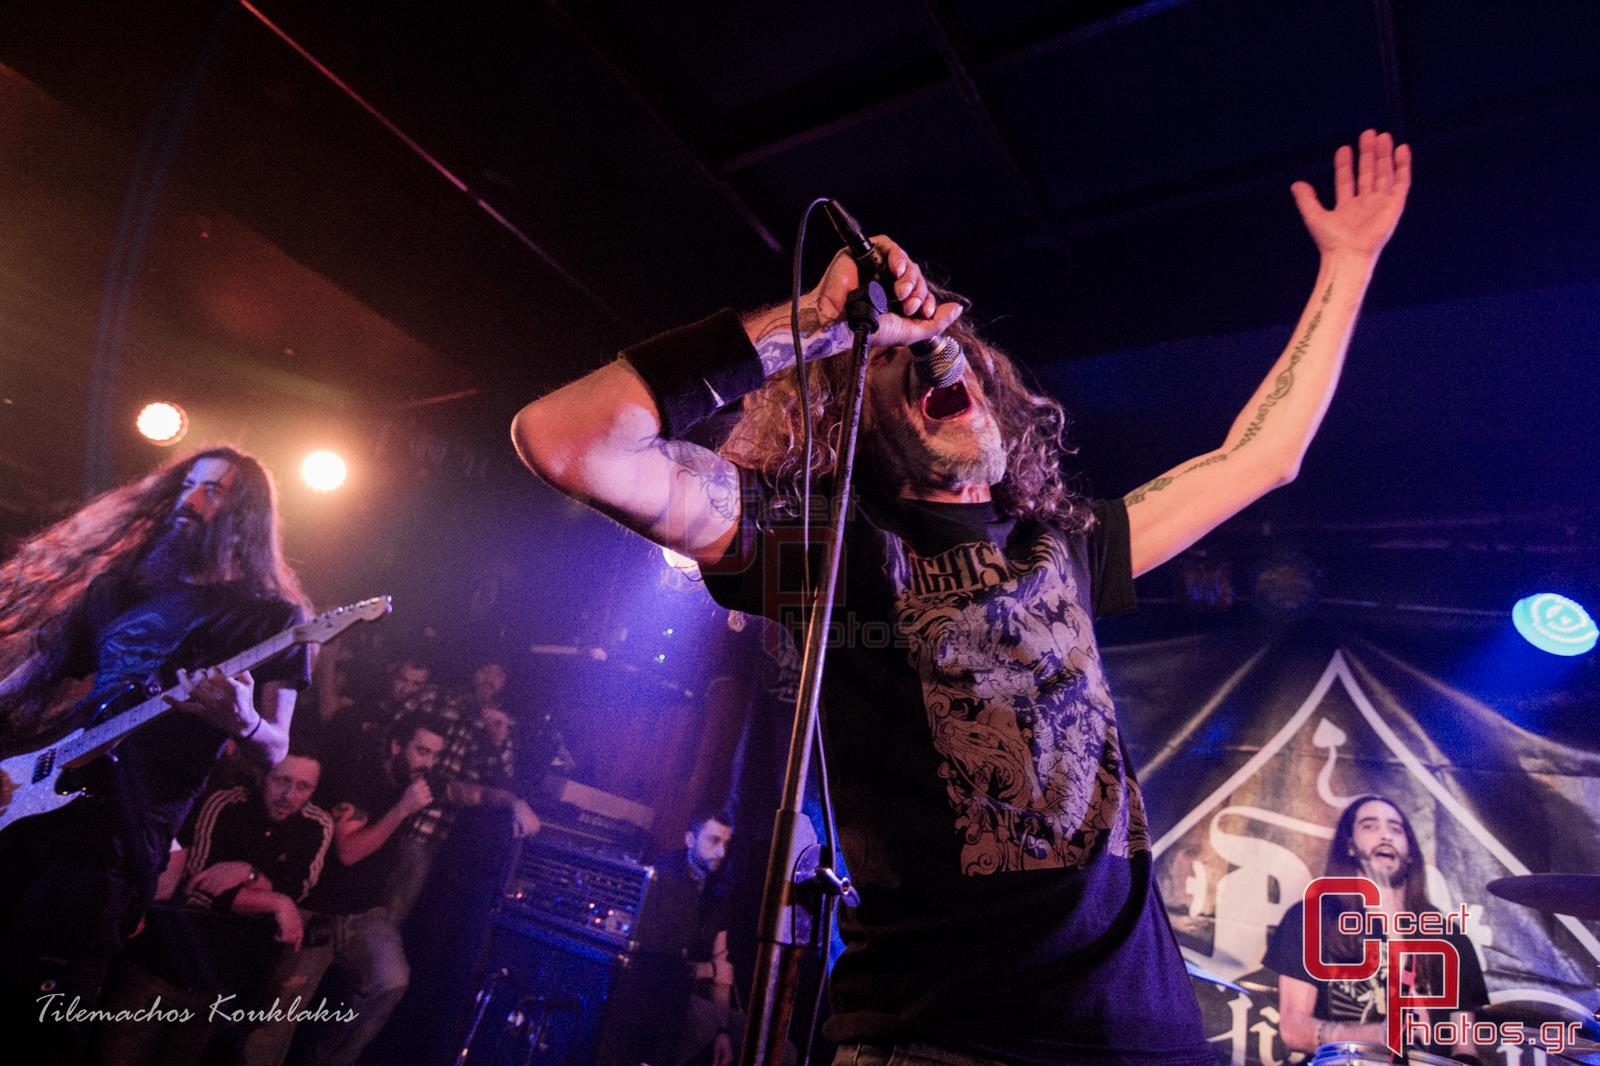 Nightstalker-Nightstalker AN Club photographer:  - concertphotos_-28